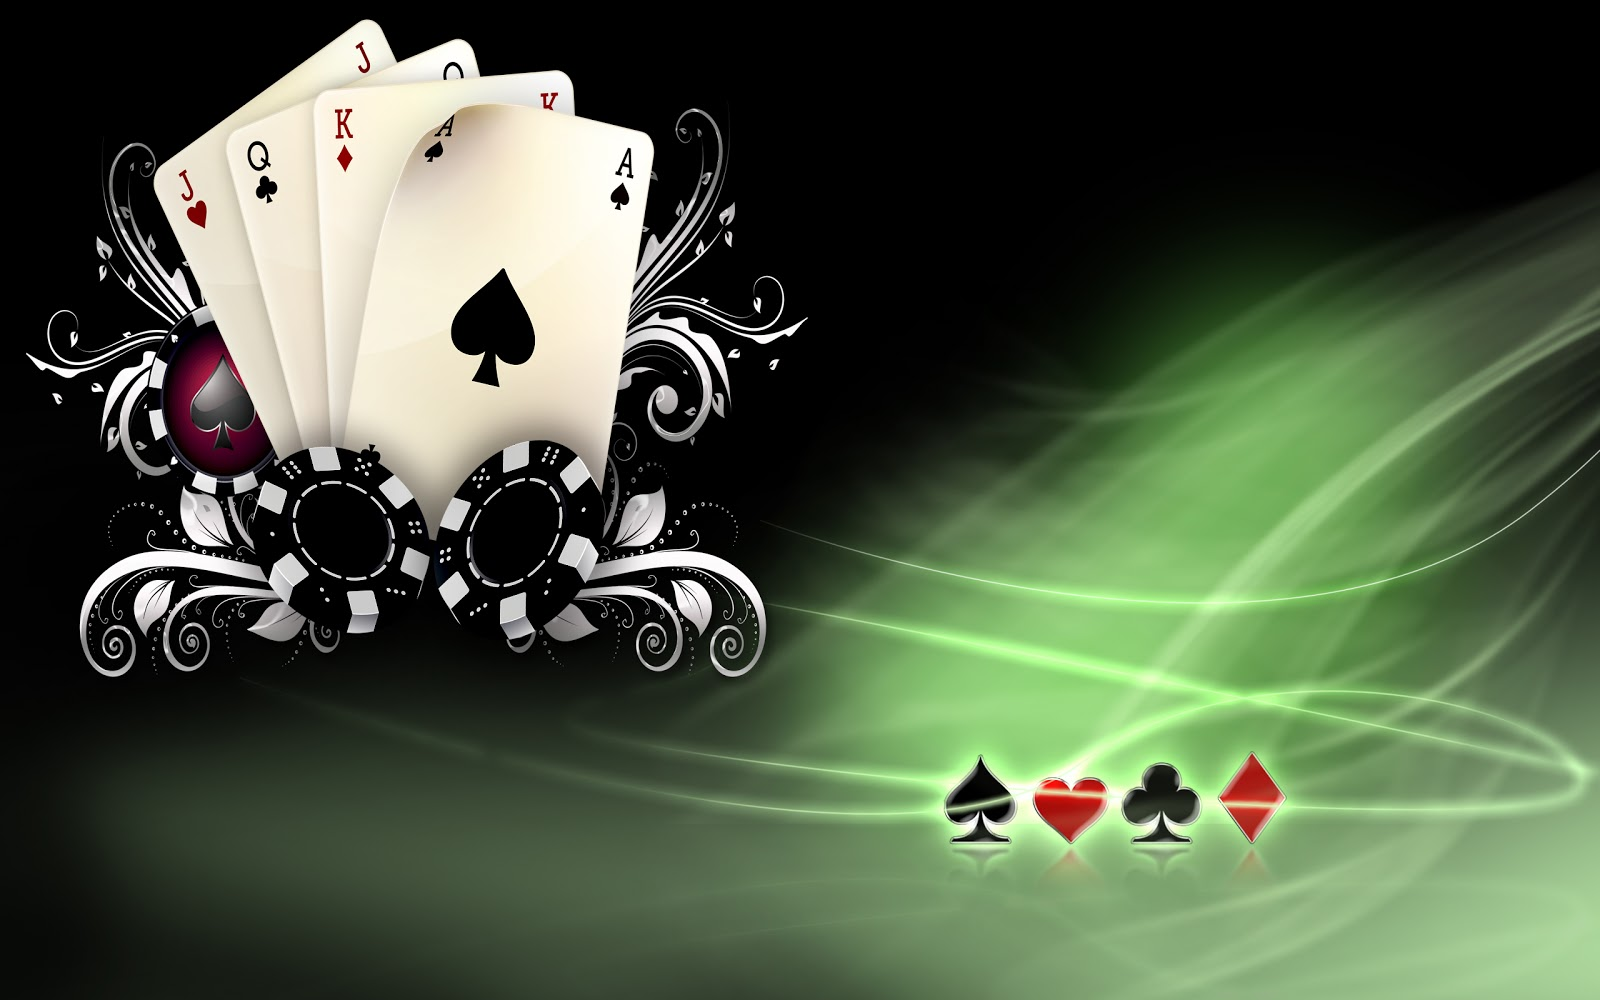 The Next Ten Things You Must Do For Online Gambling Success